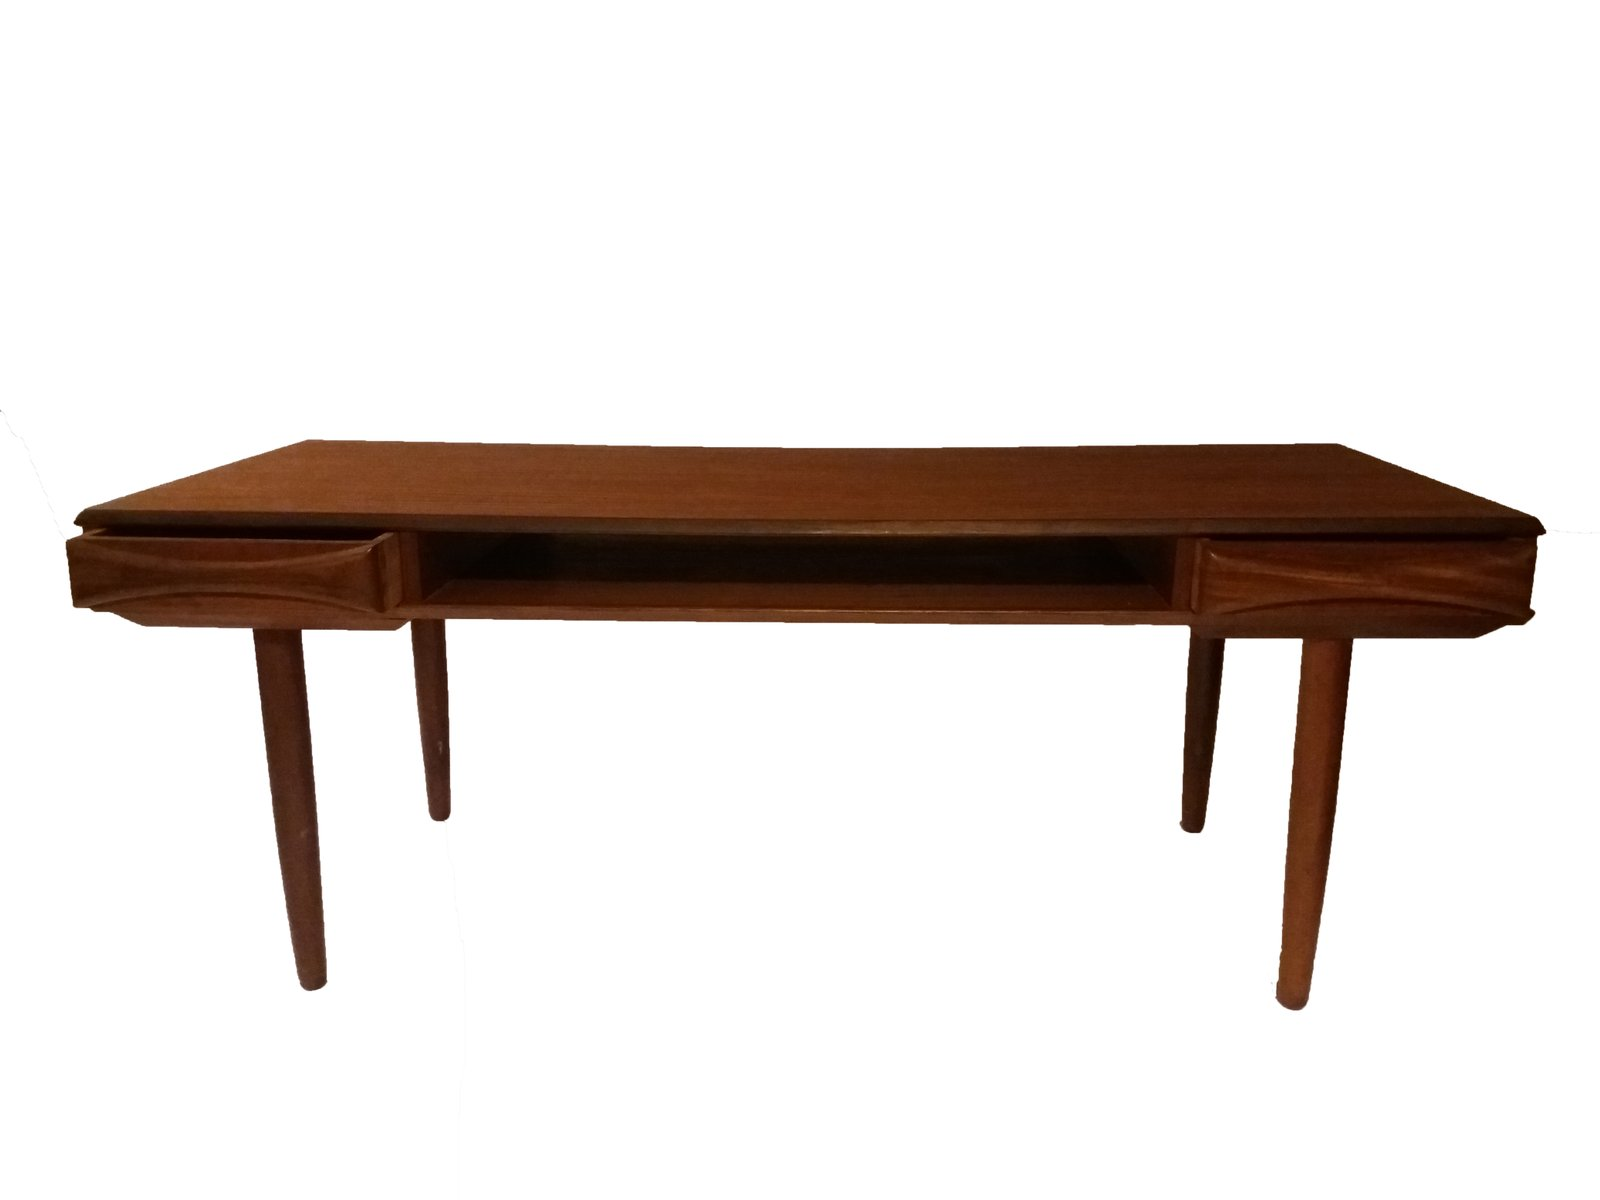 Danish Teak Coffee Table With Shelf 1960s For Sale At Pamono